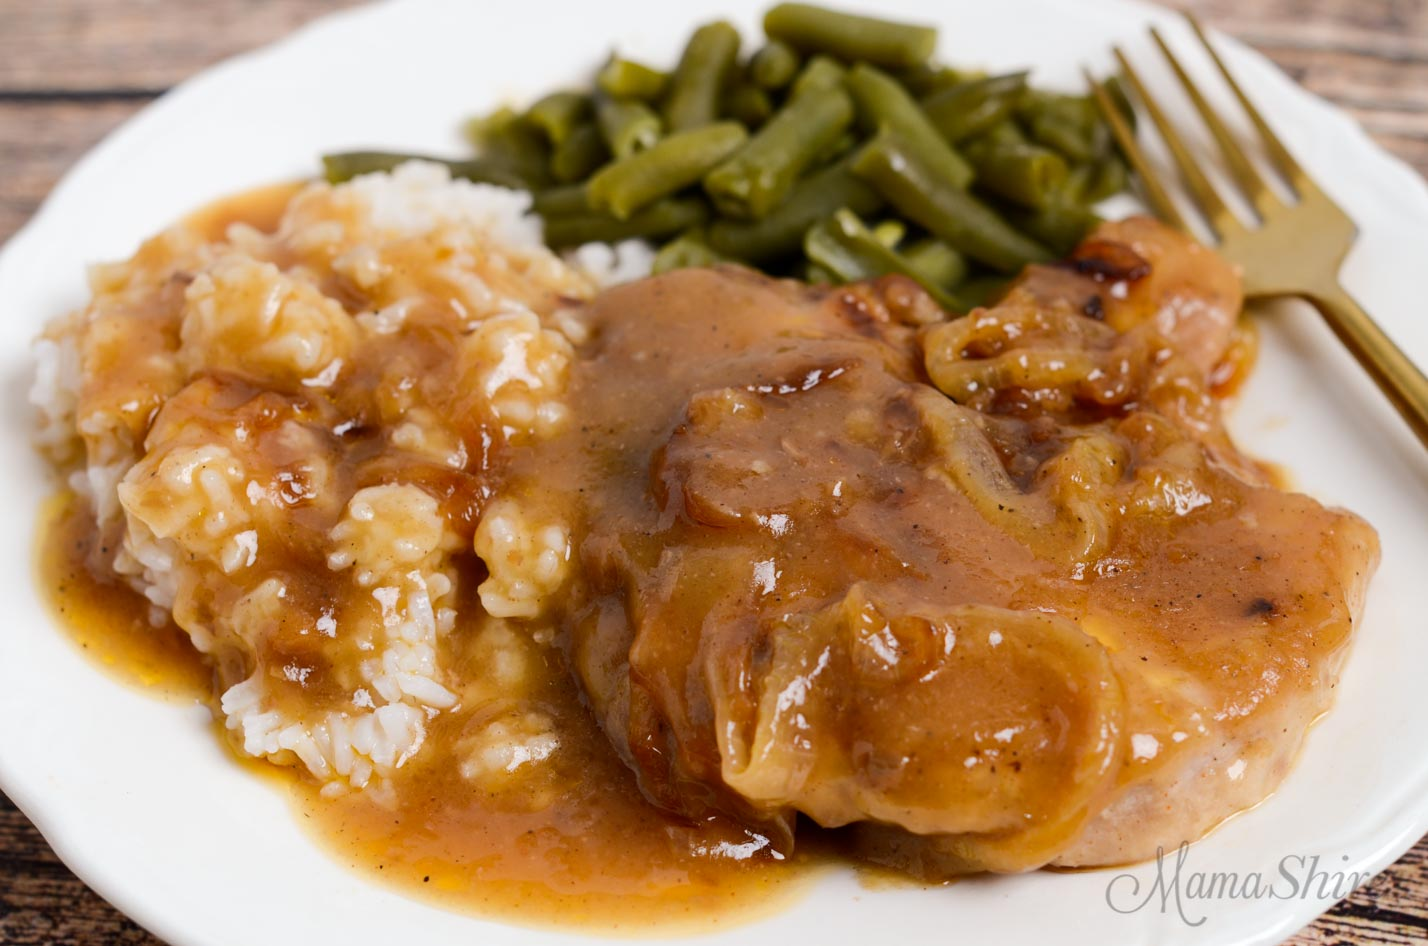 A dinner plate with smothered pork chops and rice with serving of green beans.